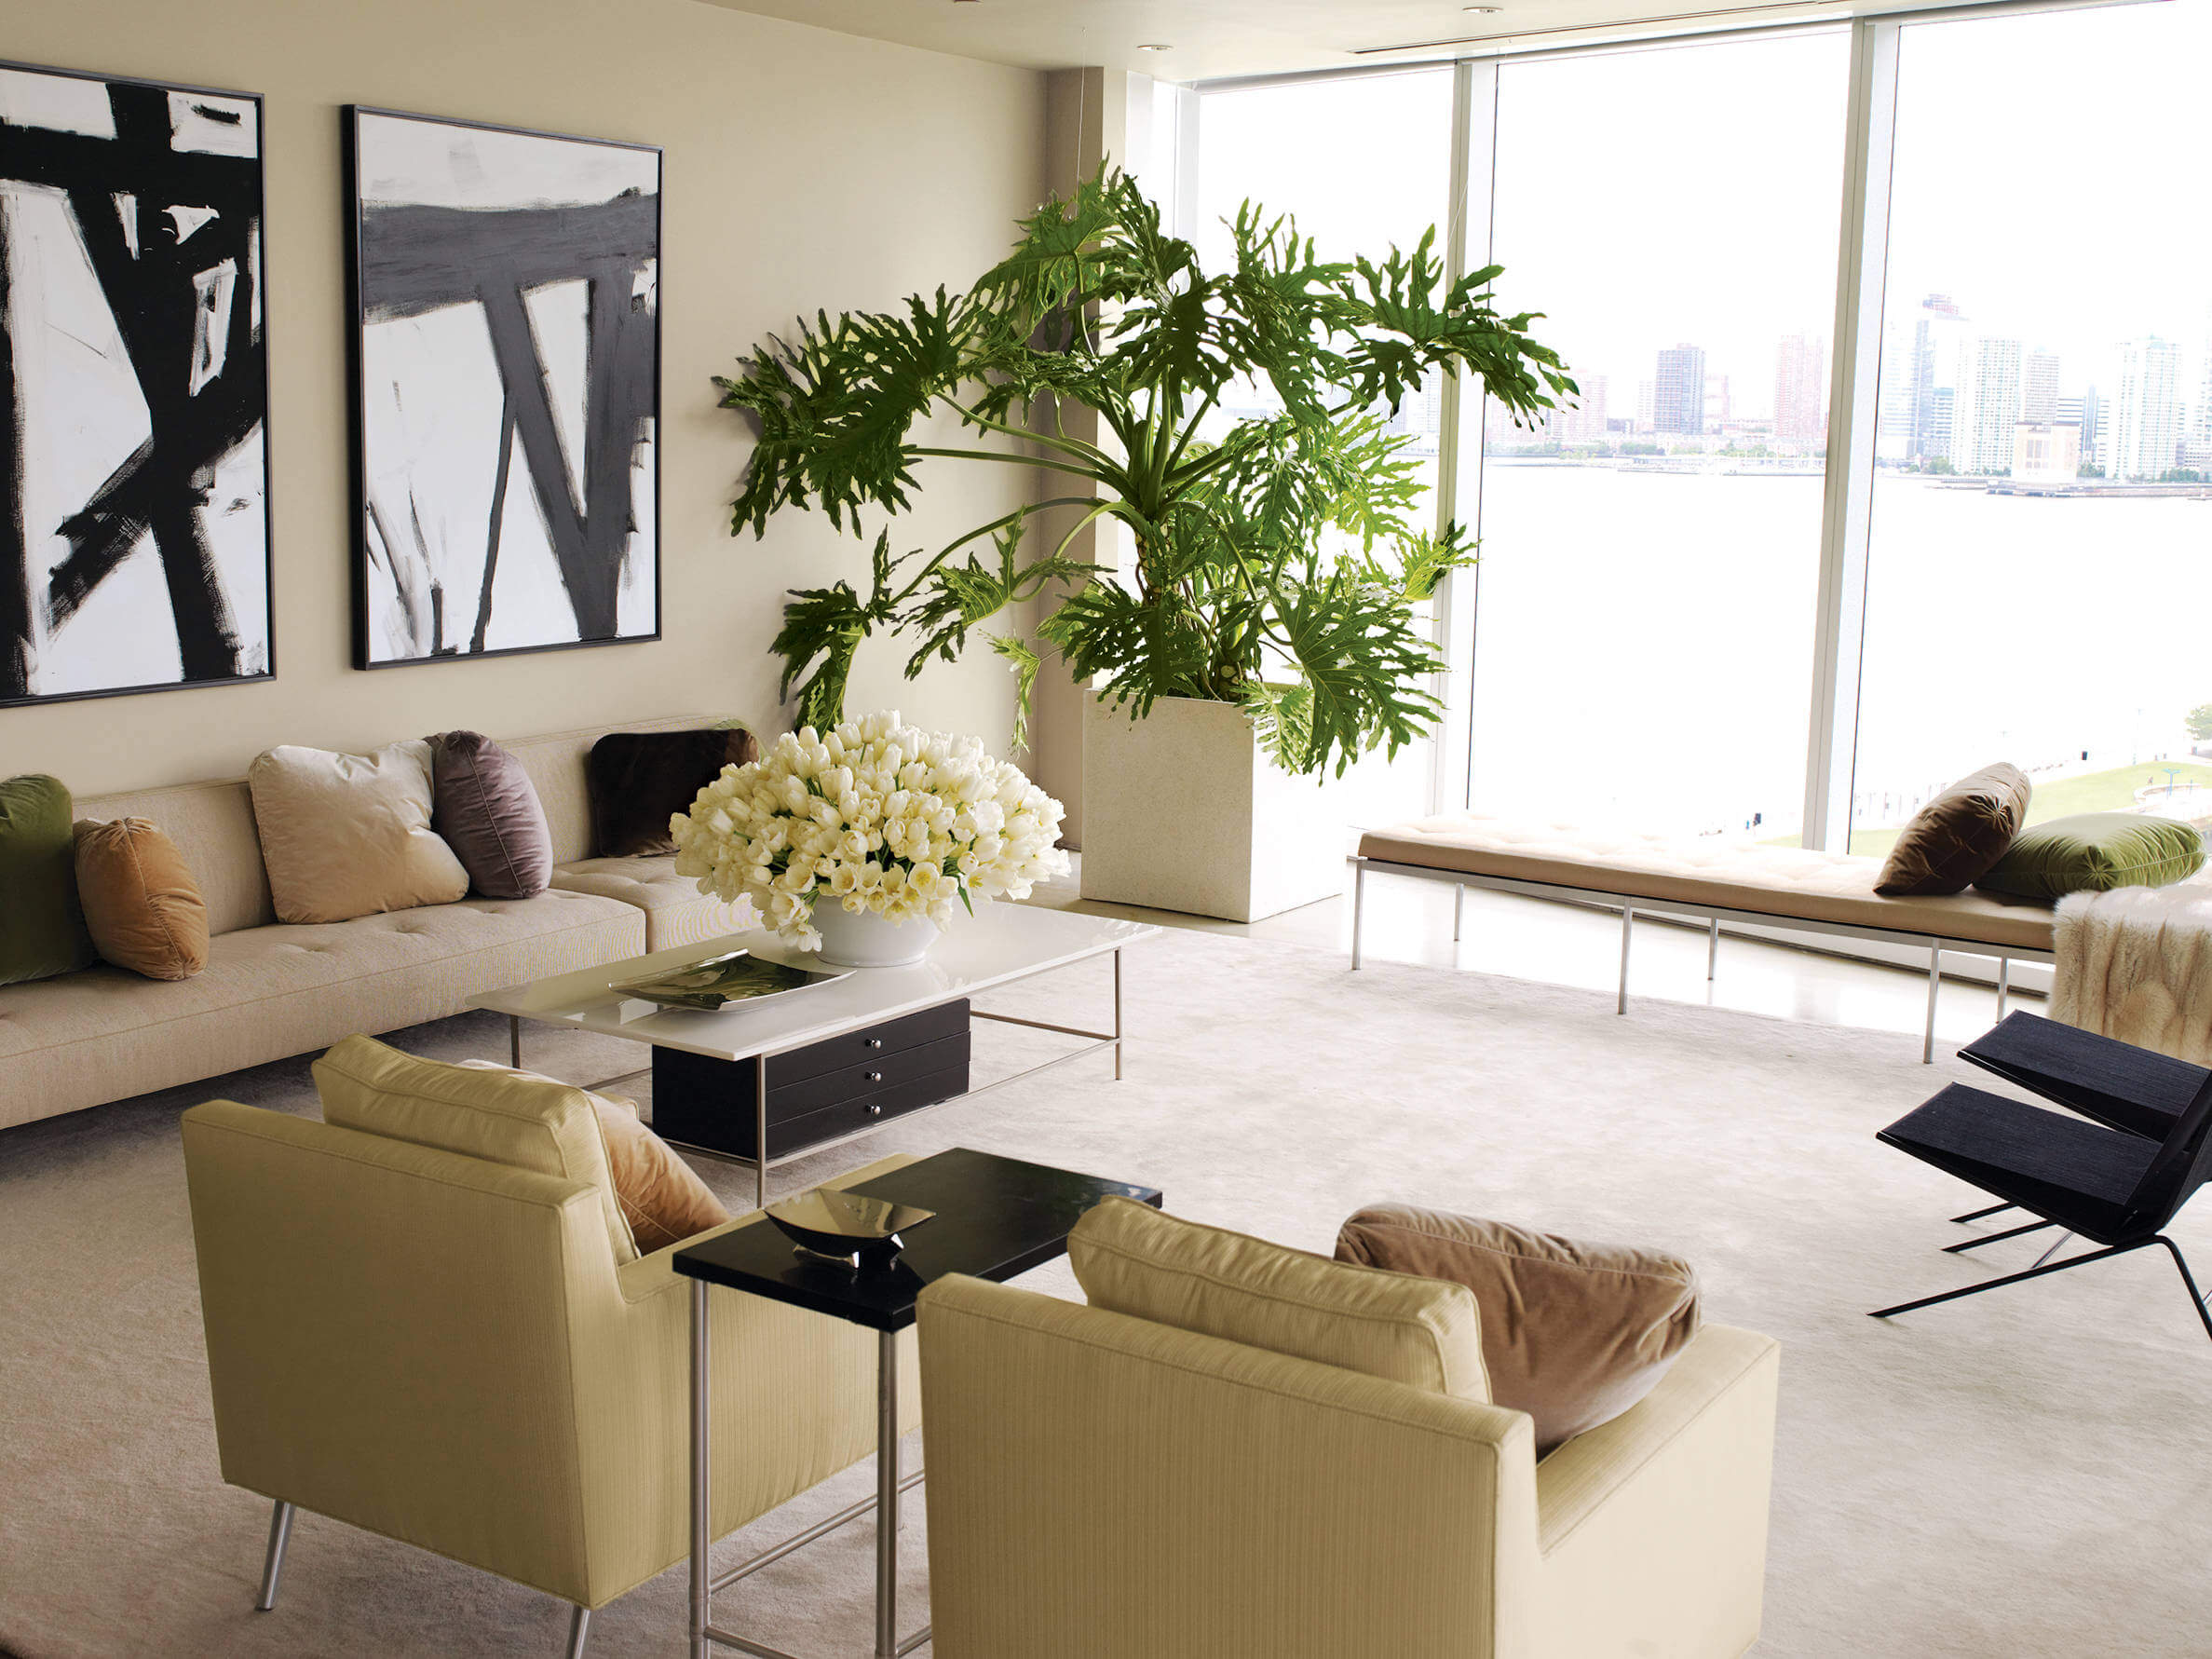 Living rooms houseplants that adds a fresh new look to your house. Plenty of Sun shine that enters the room trough that large glass windows.